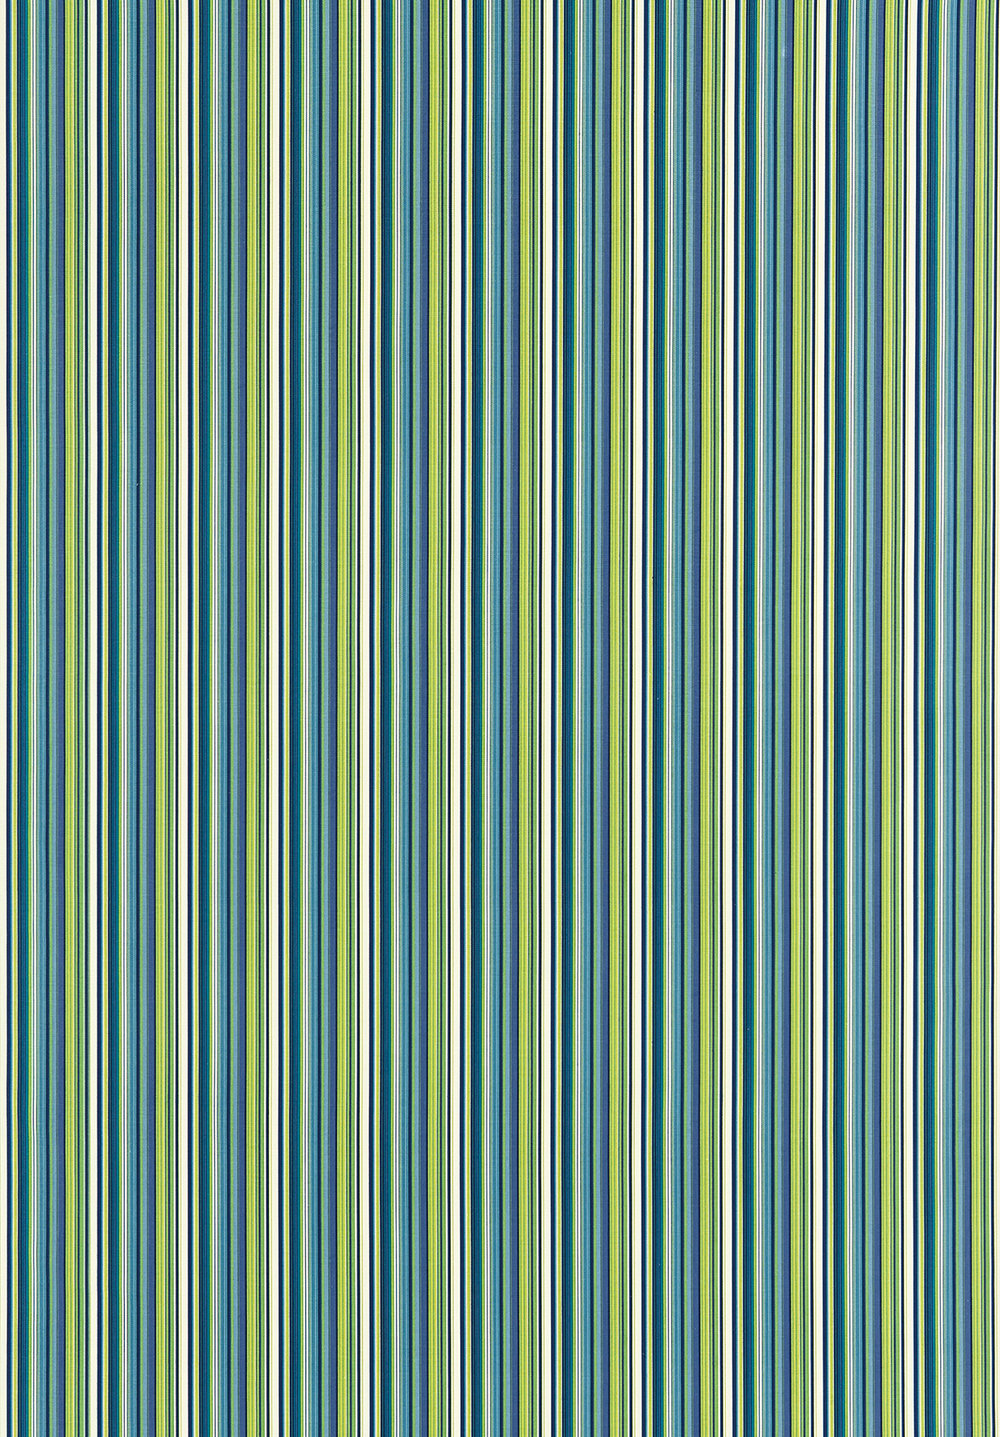 Strata by scion blue green wallpaper direct for Wallpaper direct